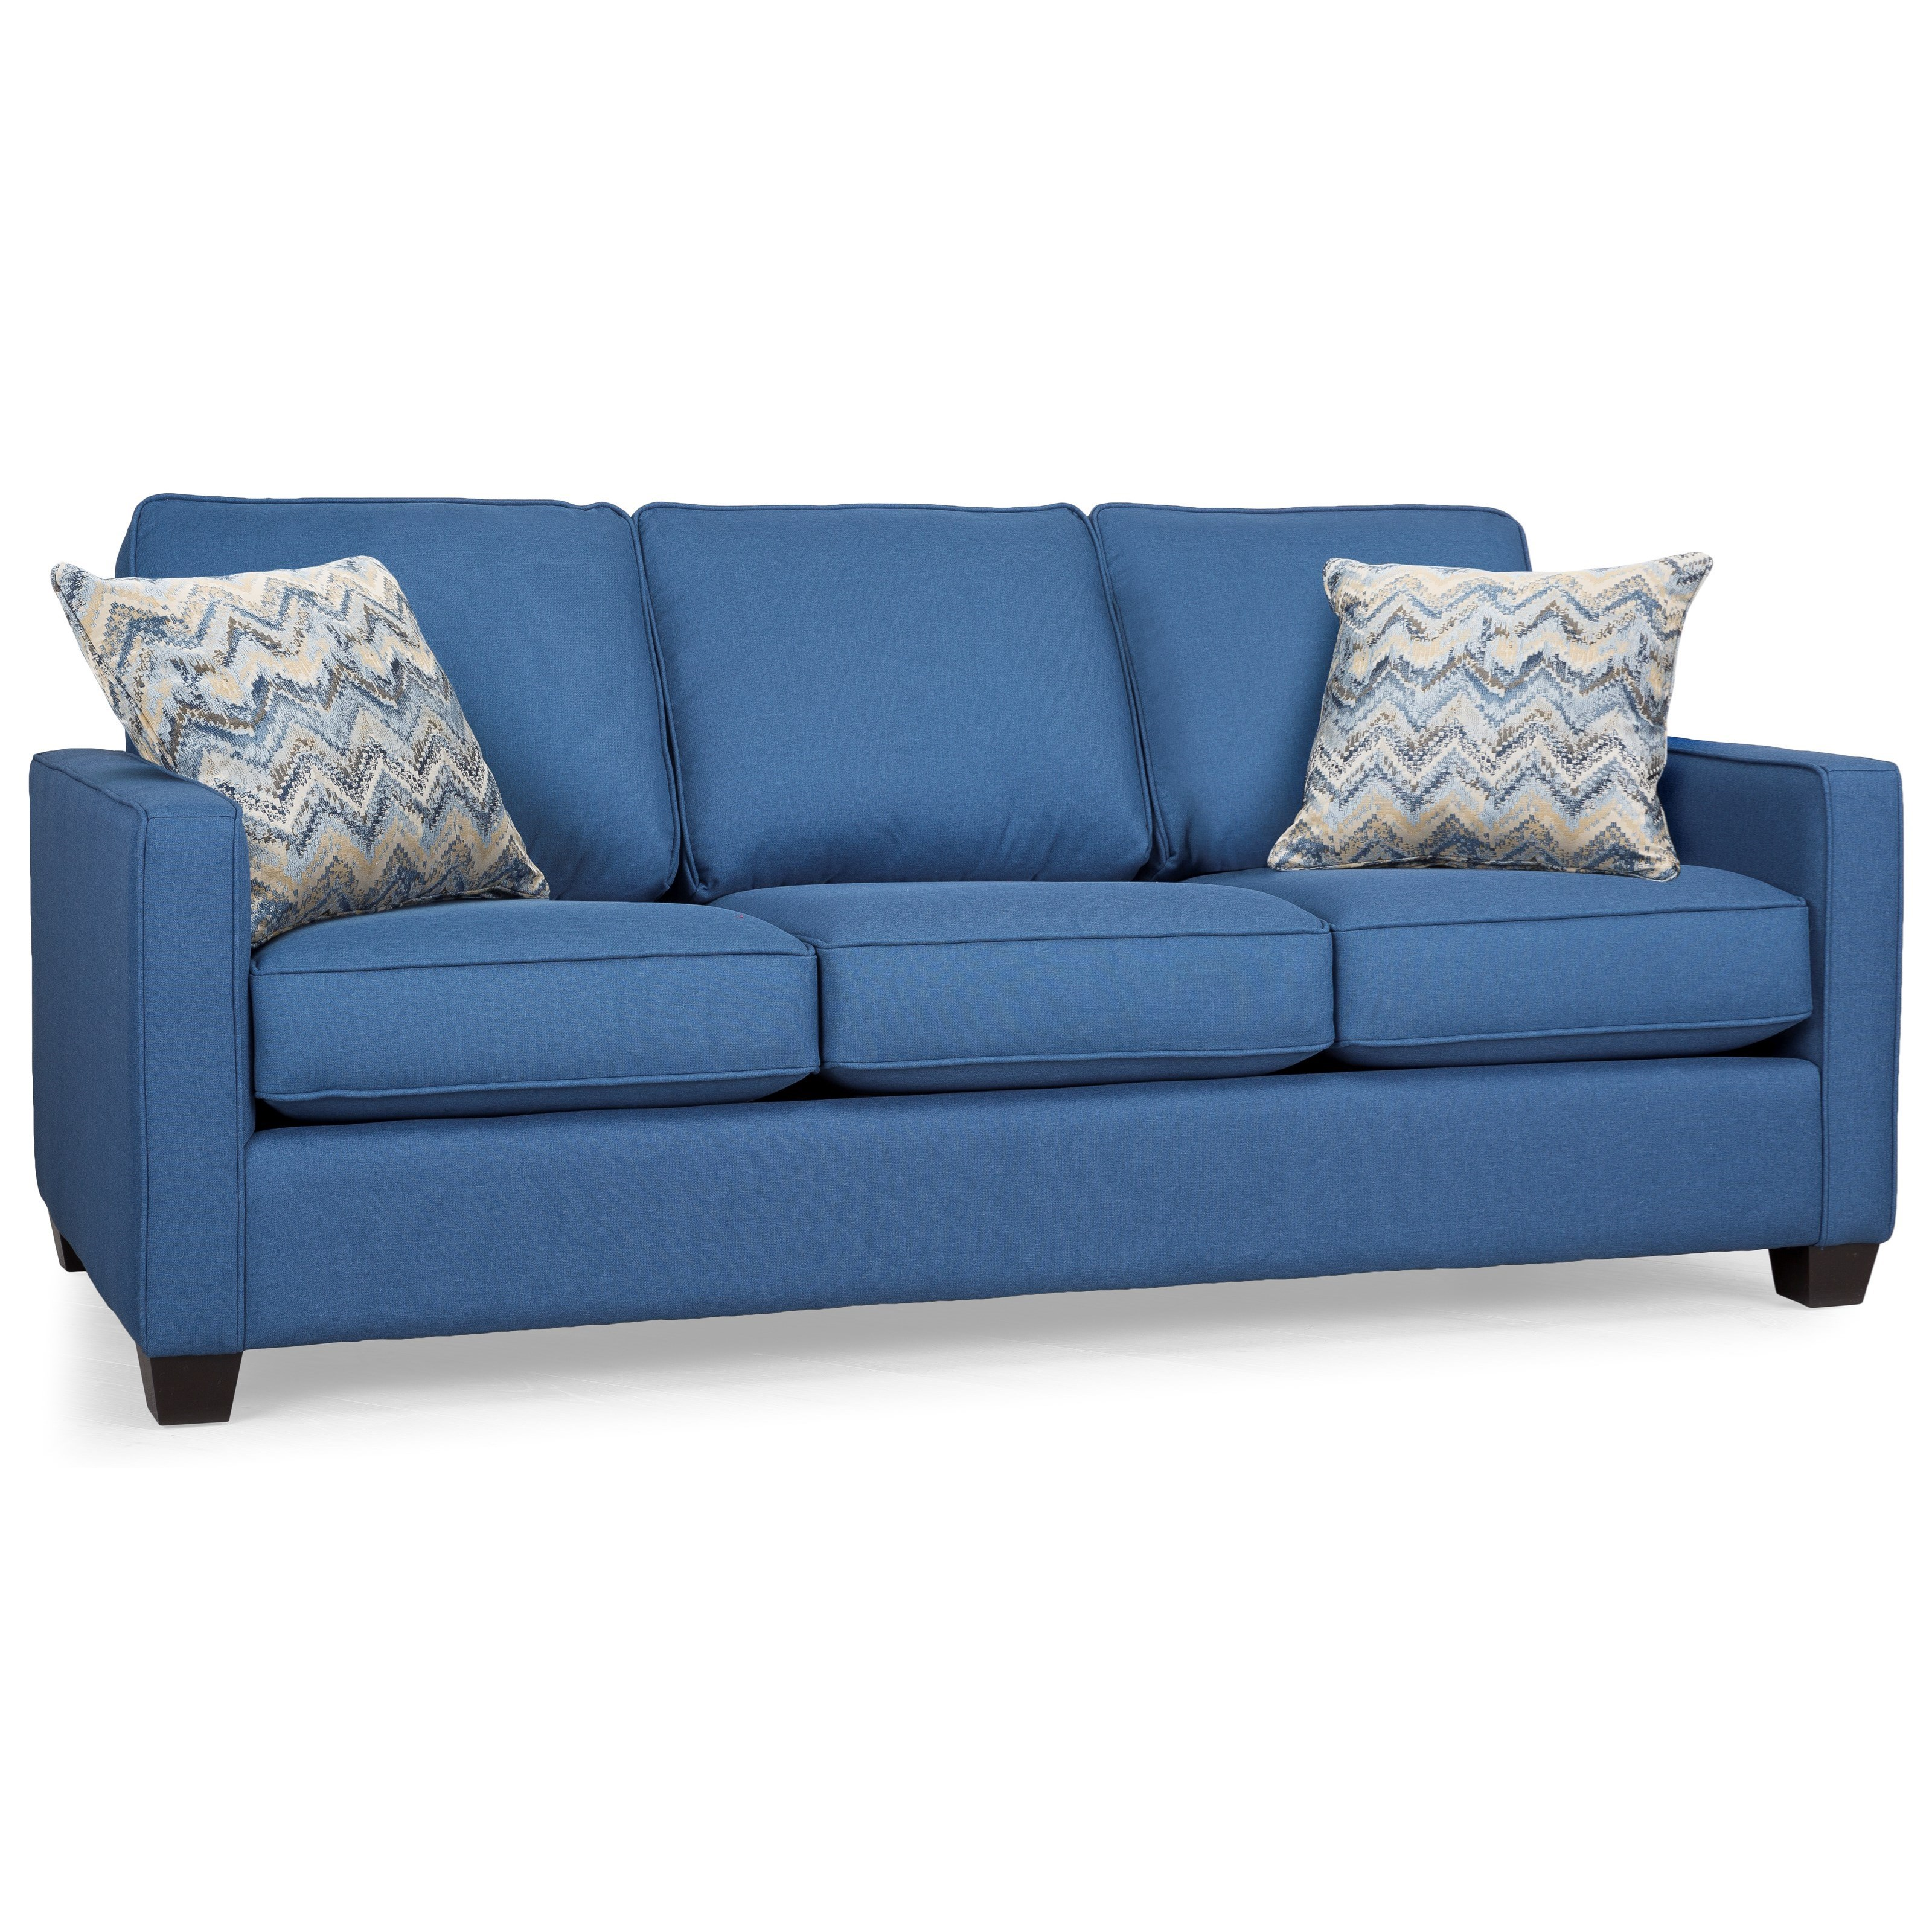 2855 Sofa by Decor-Rest at Rooms for Less